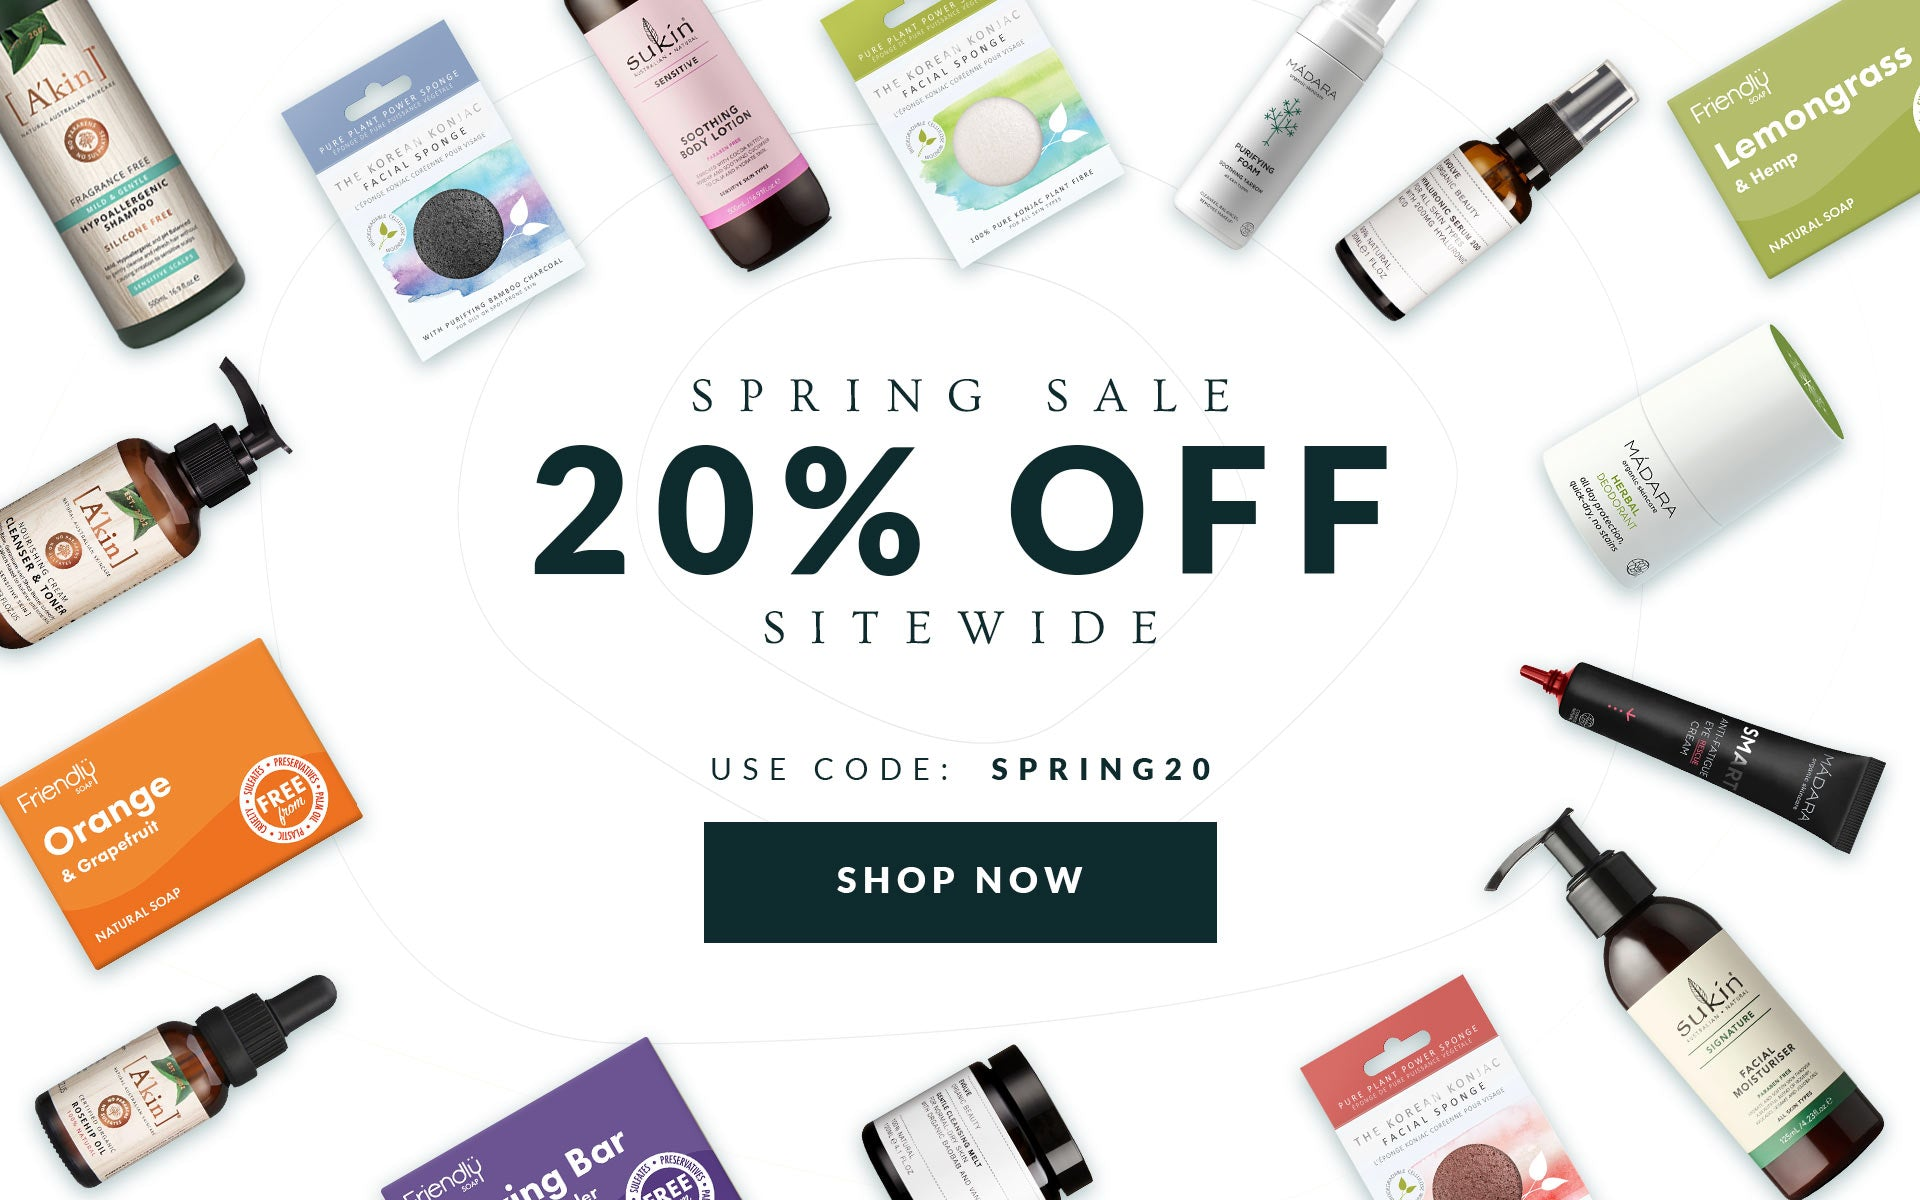 20% off site wide.  Use code SPRING20